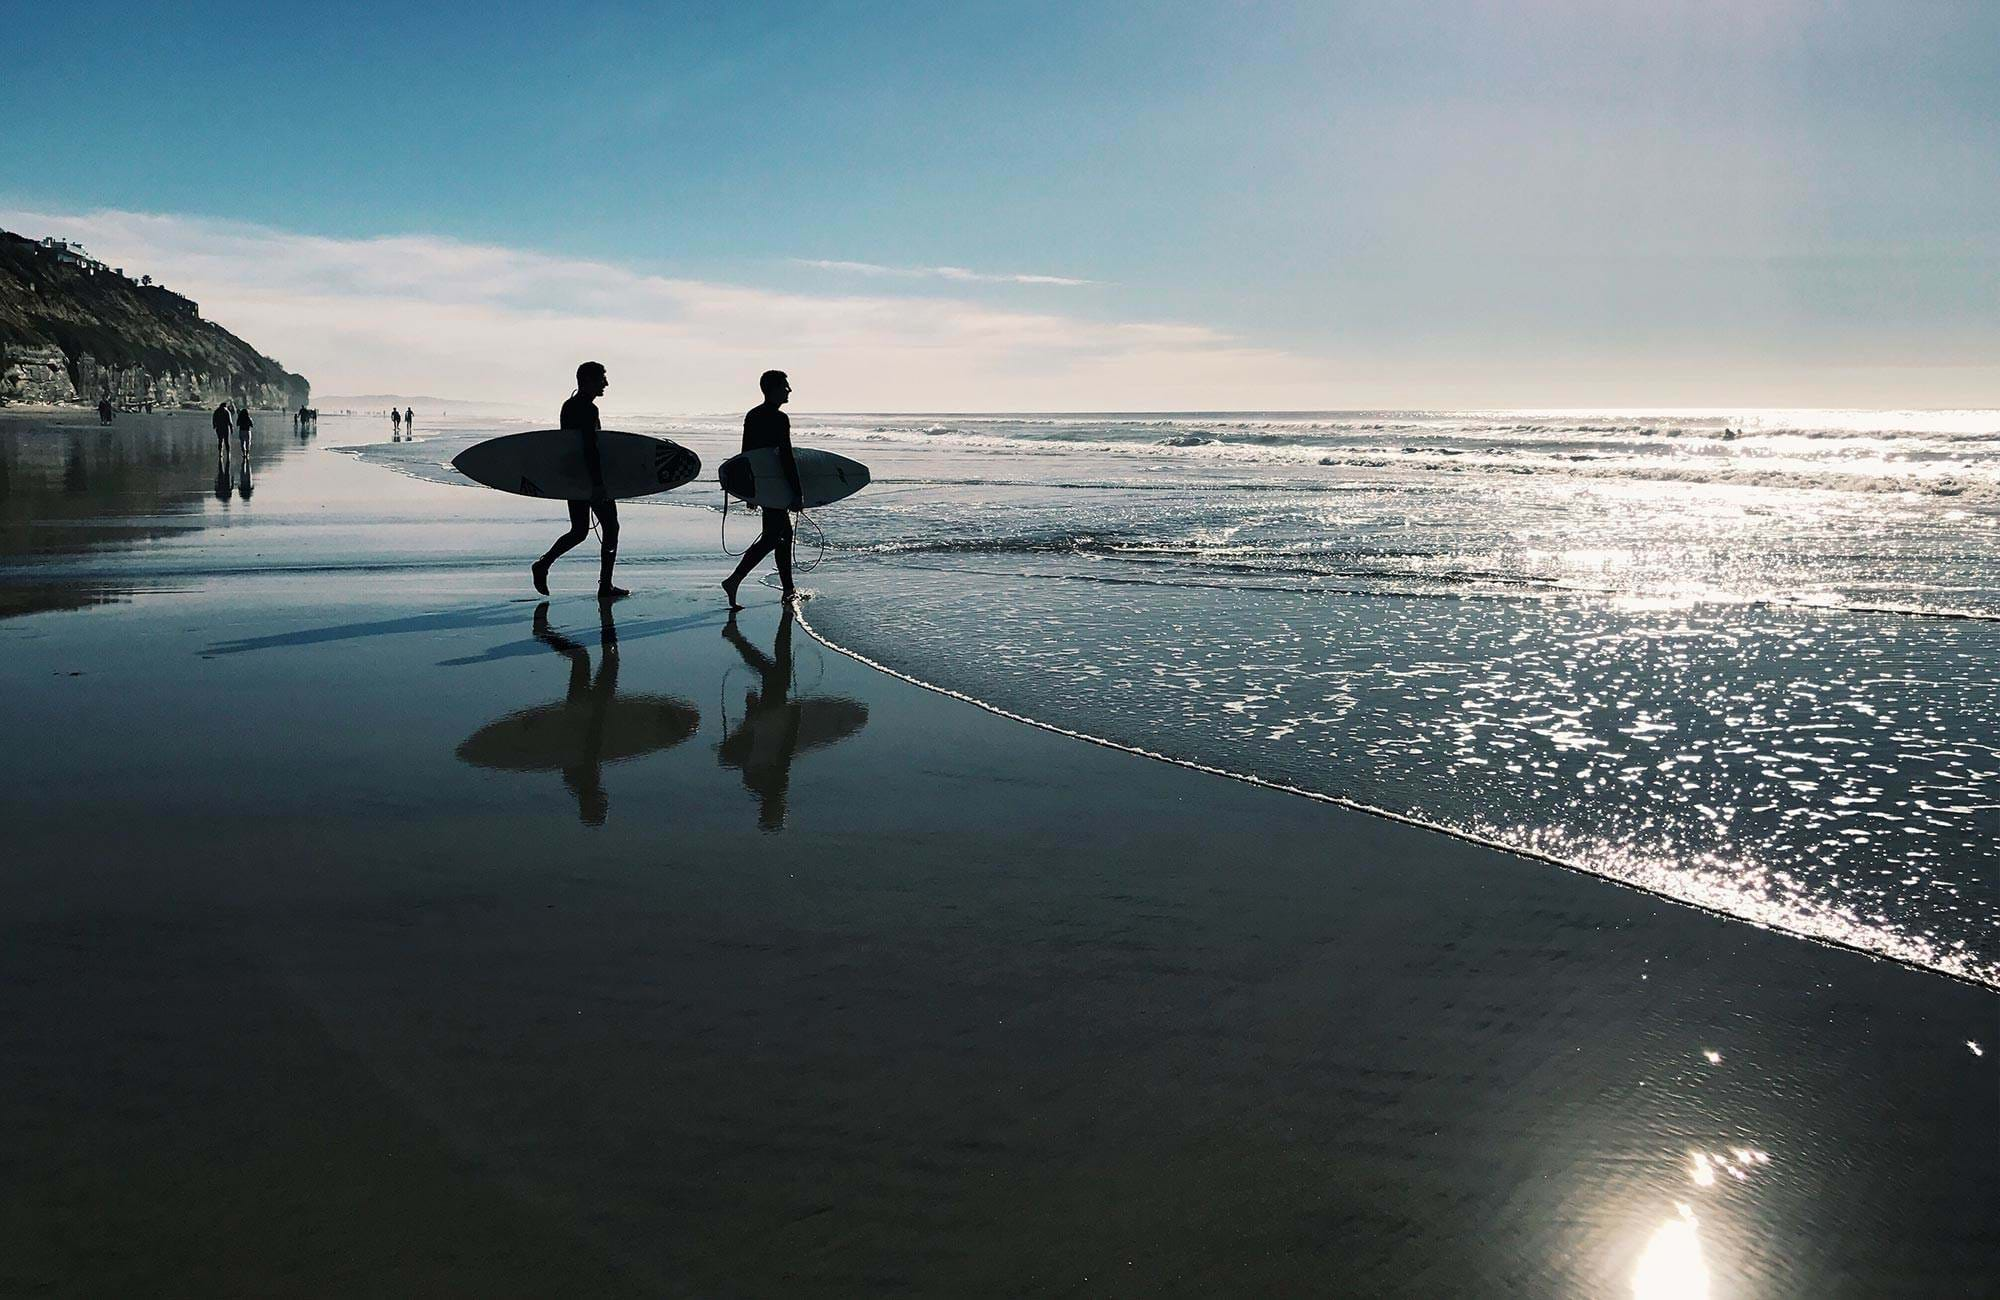 north-america-usa-san-diego-surfers-ocean